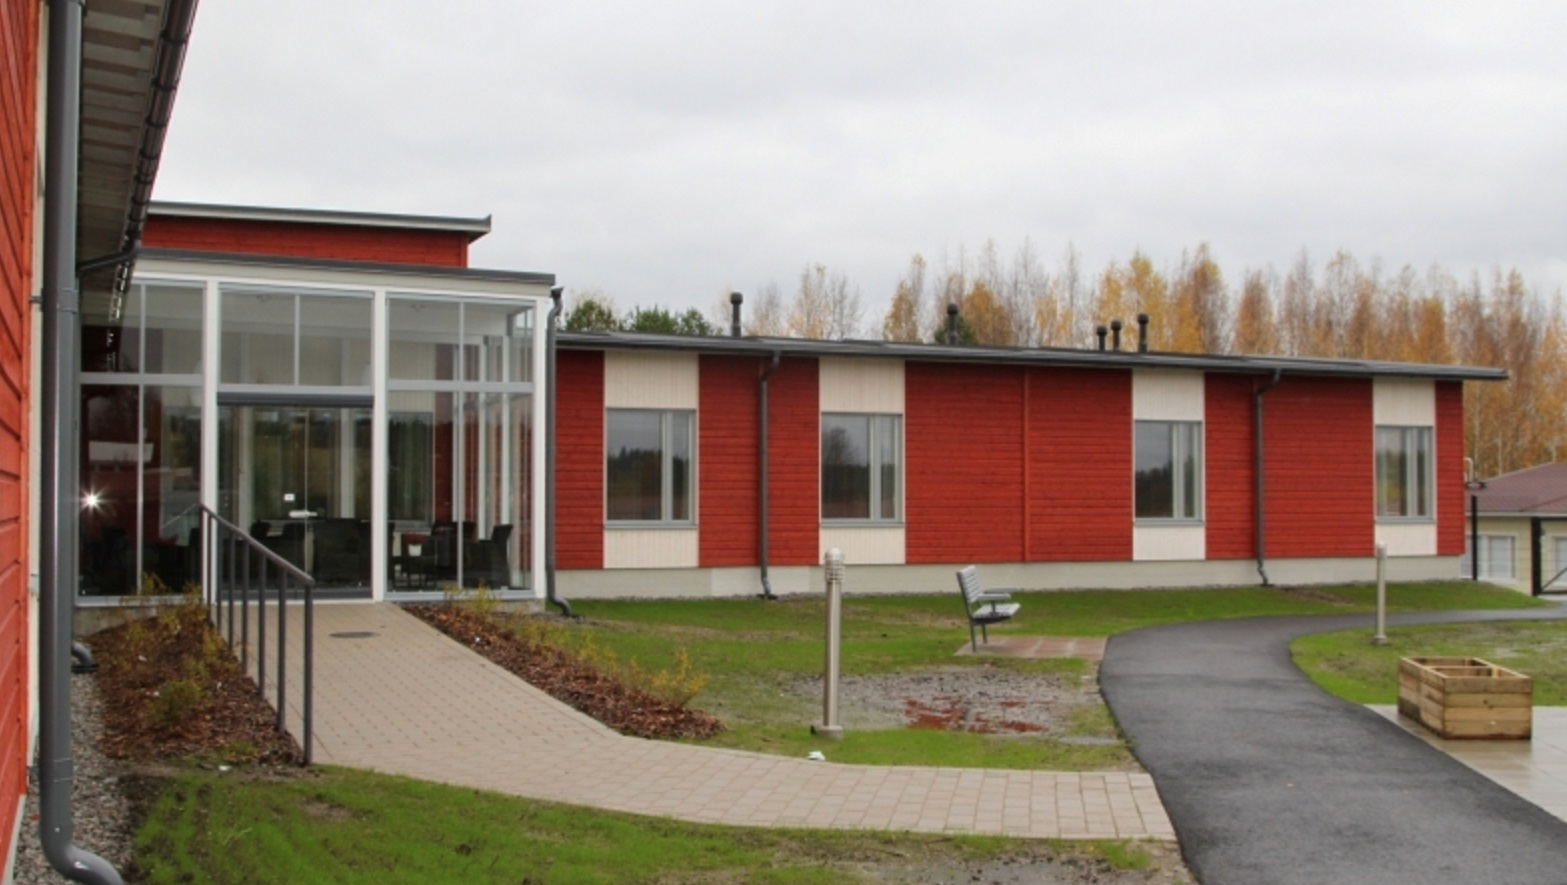 Estonian modular home producer exports houses for refugees for Modular haus deutschland